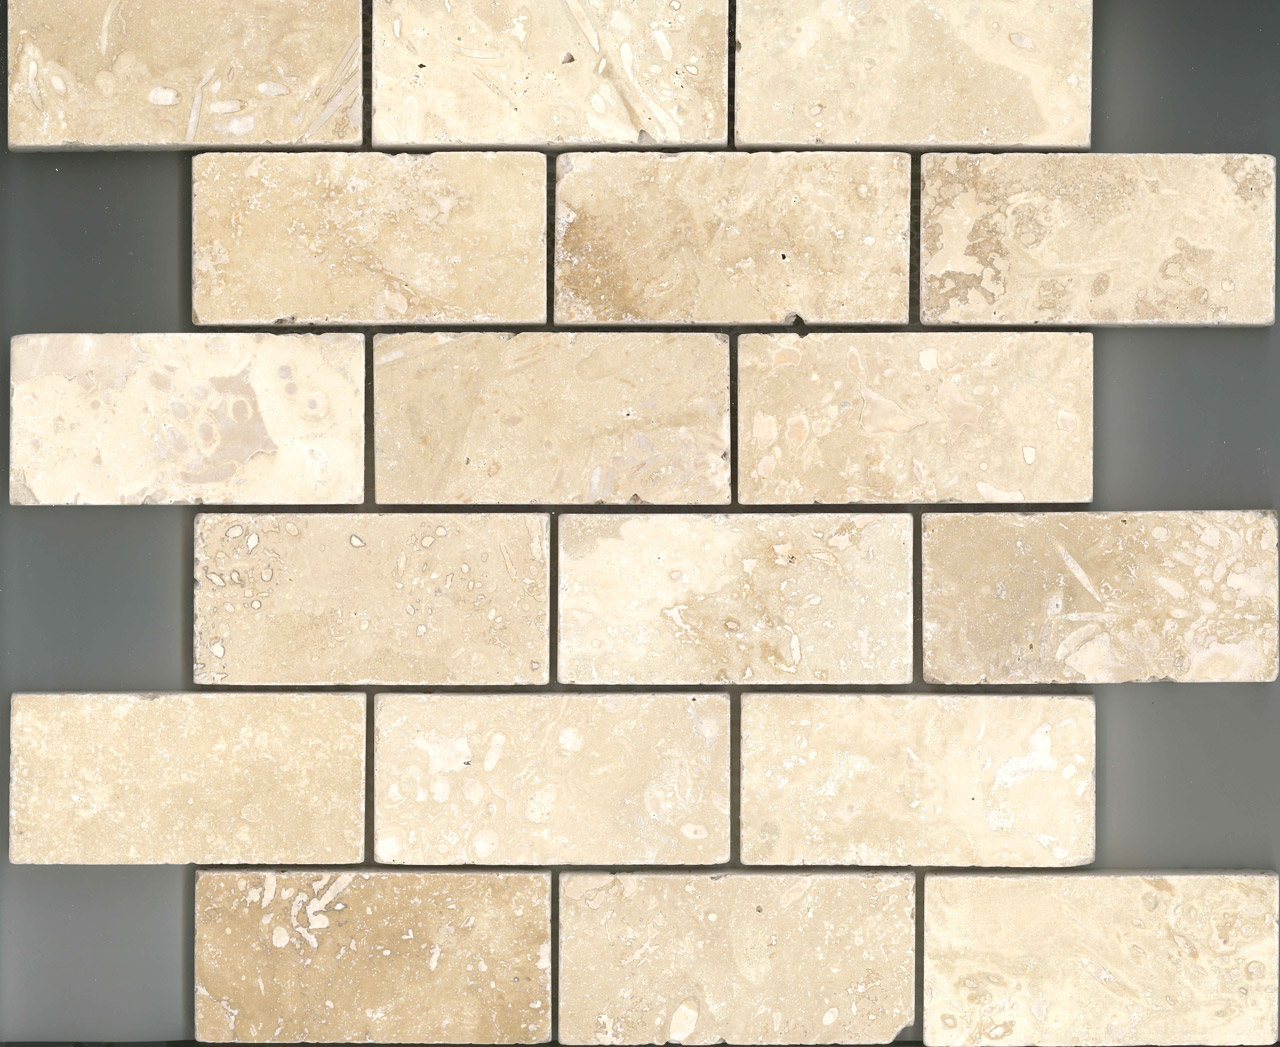 Grout Mosaic Tile 4m² Luxury Travertine Stone Mosaic Bundle Including